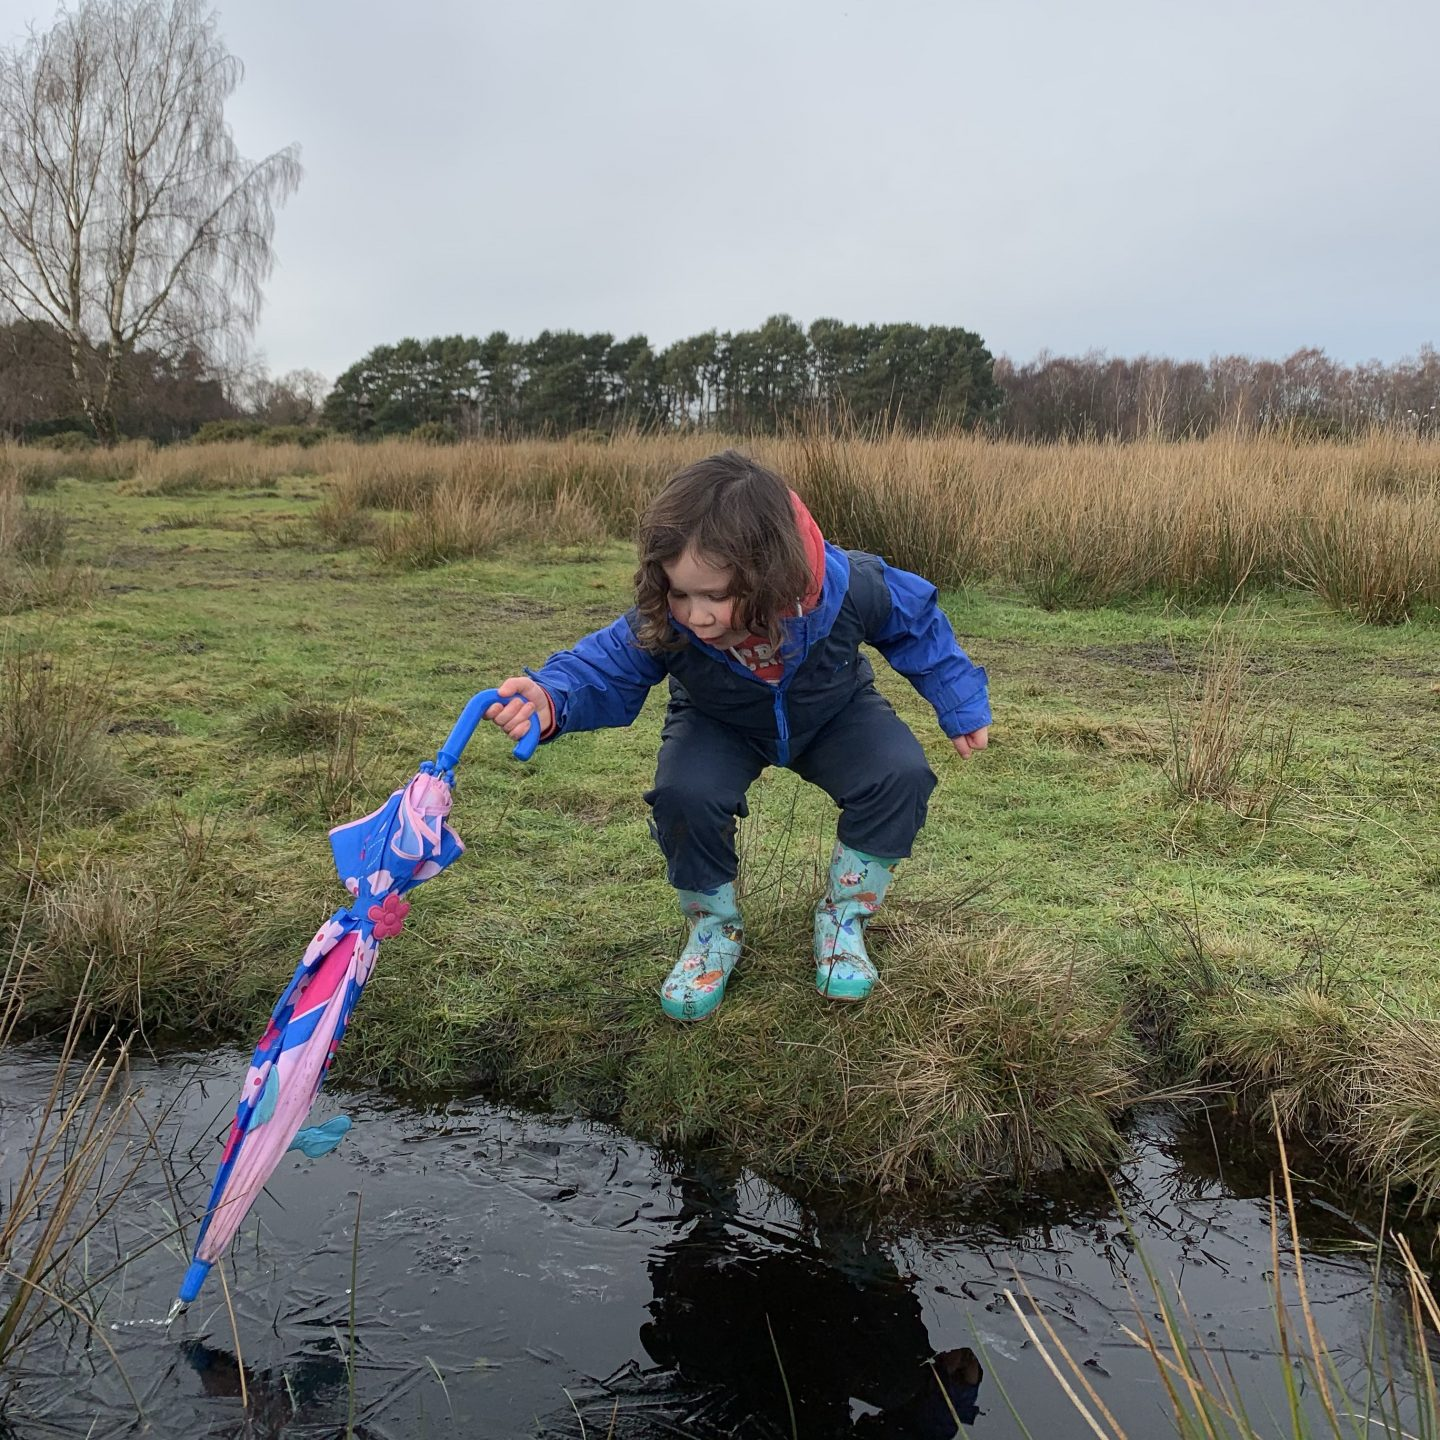 a young girl poking an umbrella in a ditch